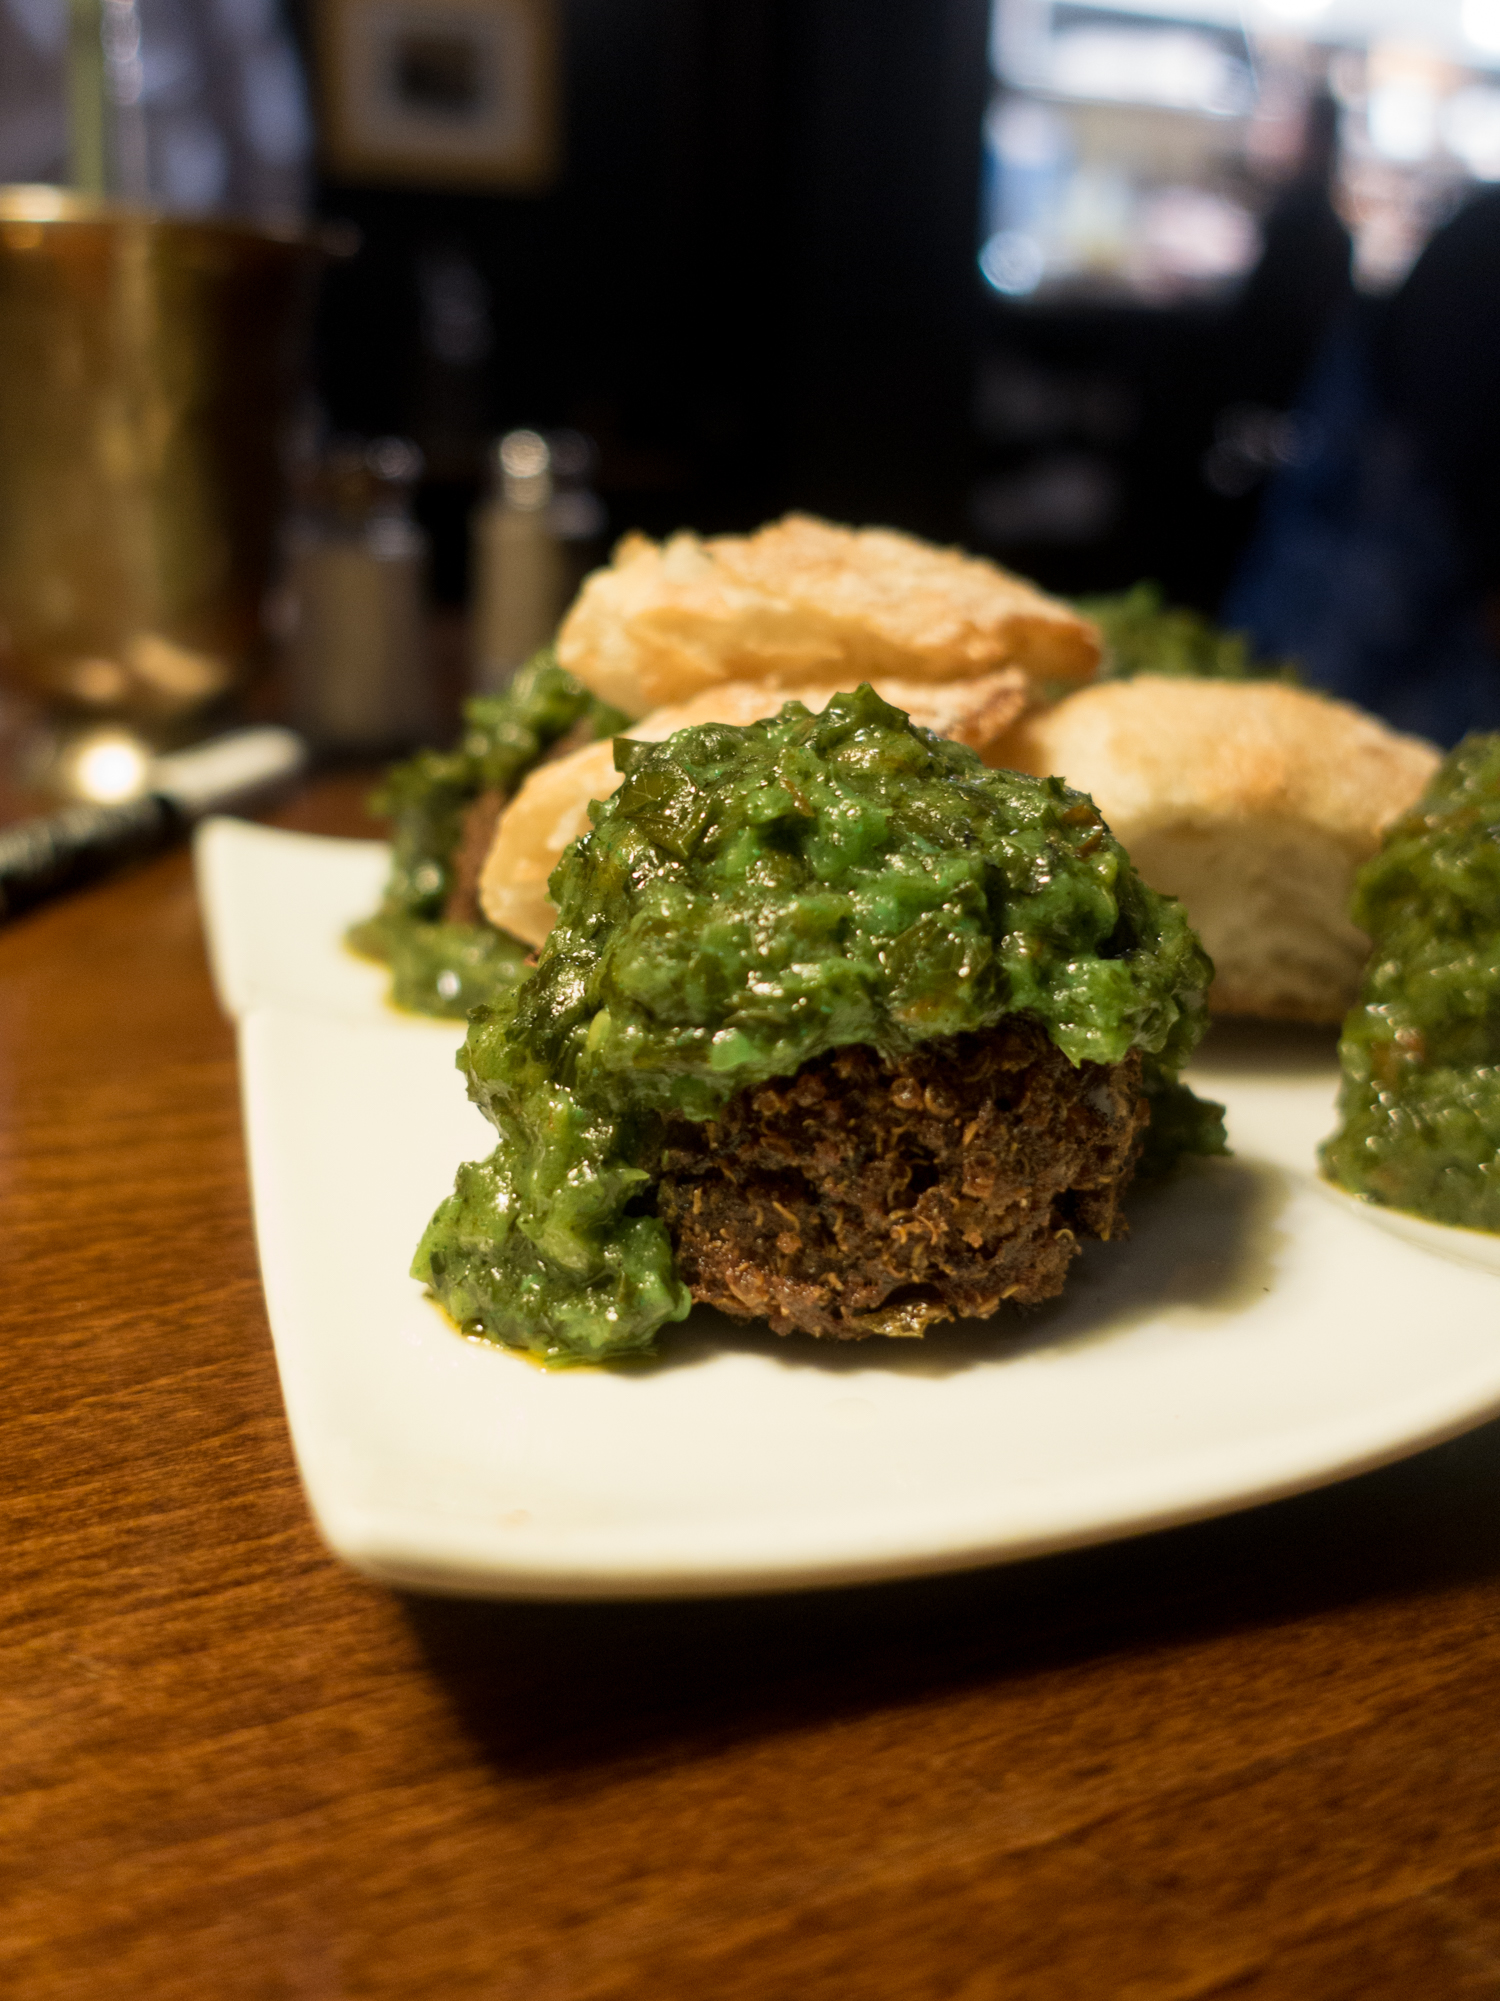 At Mimi Blue Meatballs, you'll find a meatball focused menu. There are meatball options for everyone—even vegan meatballs! #vegan #veganmeatballs #